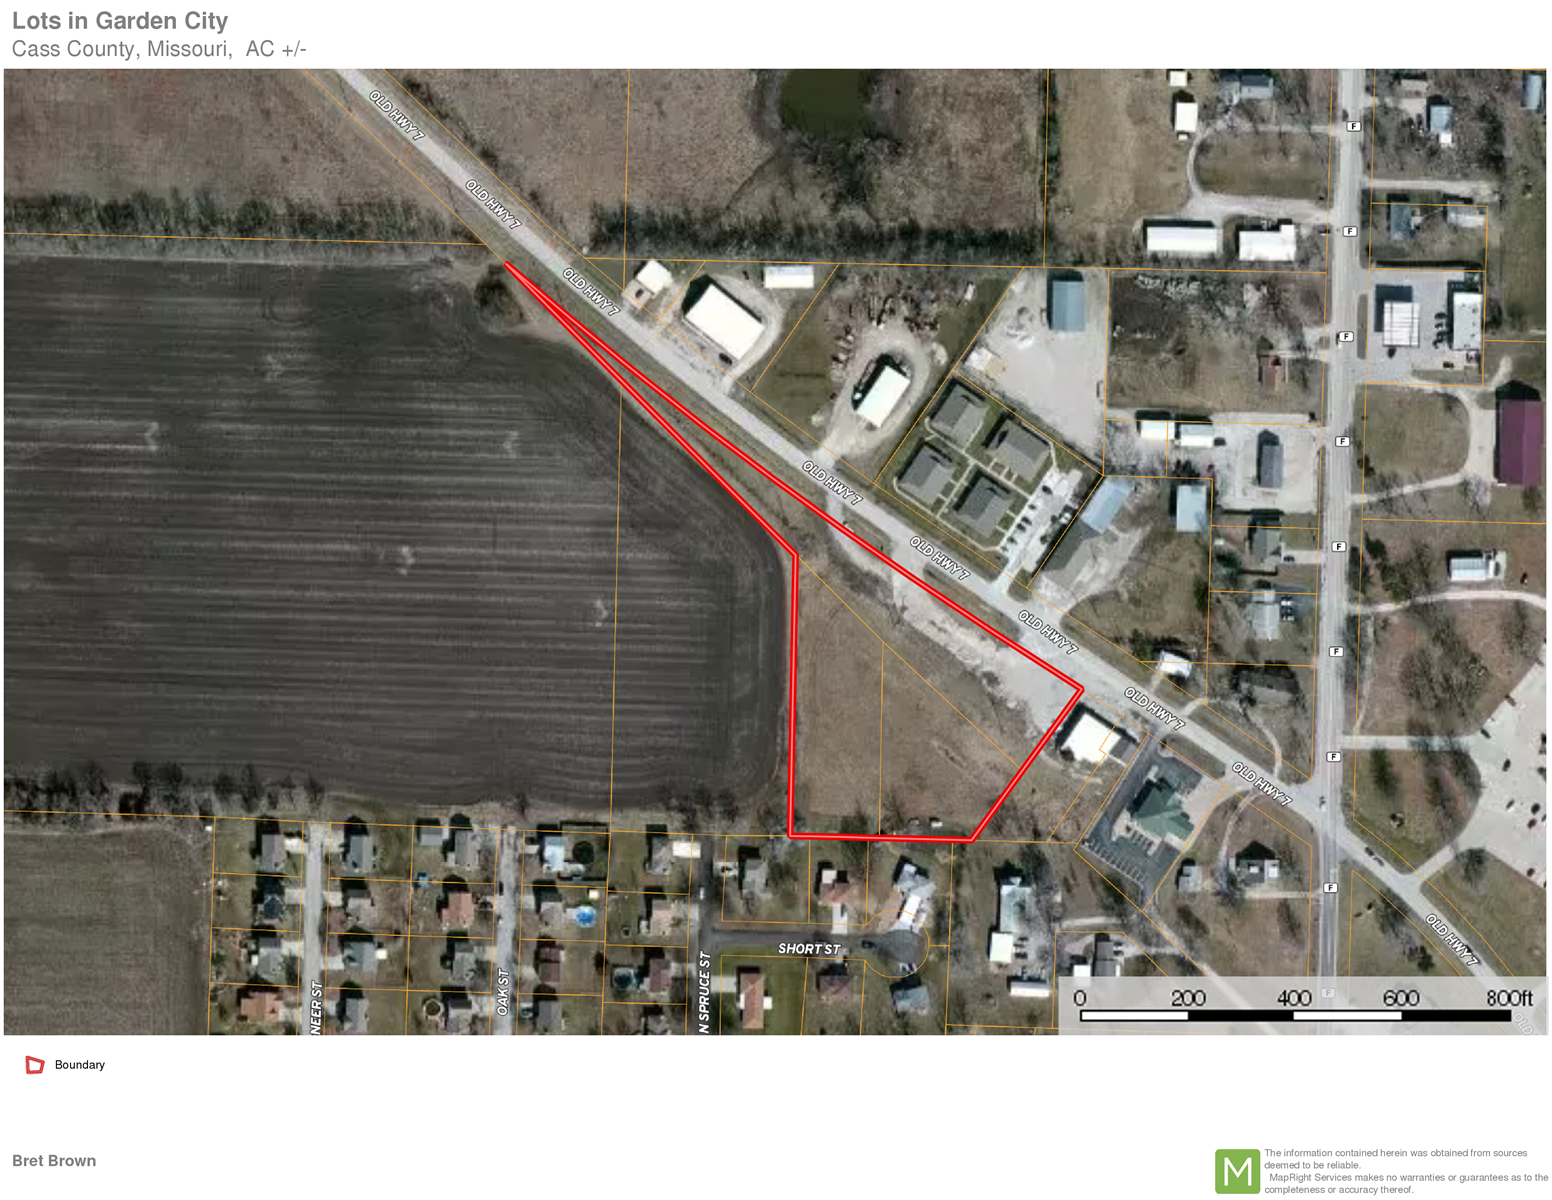 Land for Sale in Garden City, Cass County